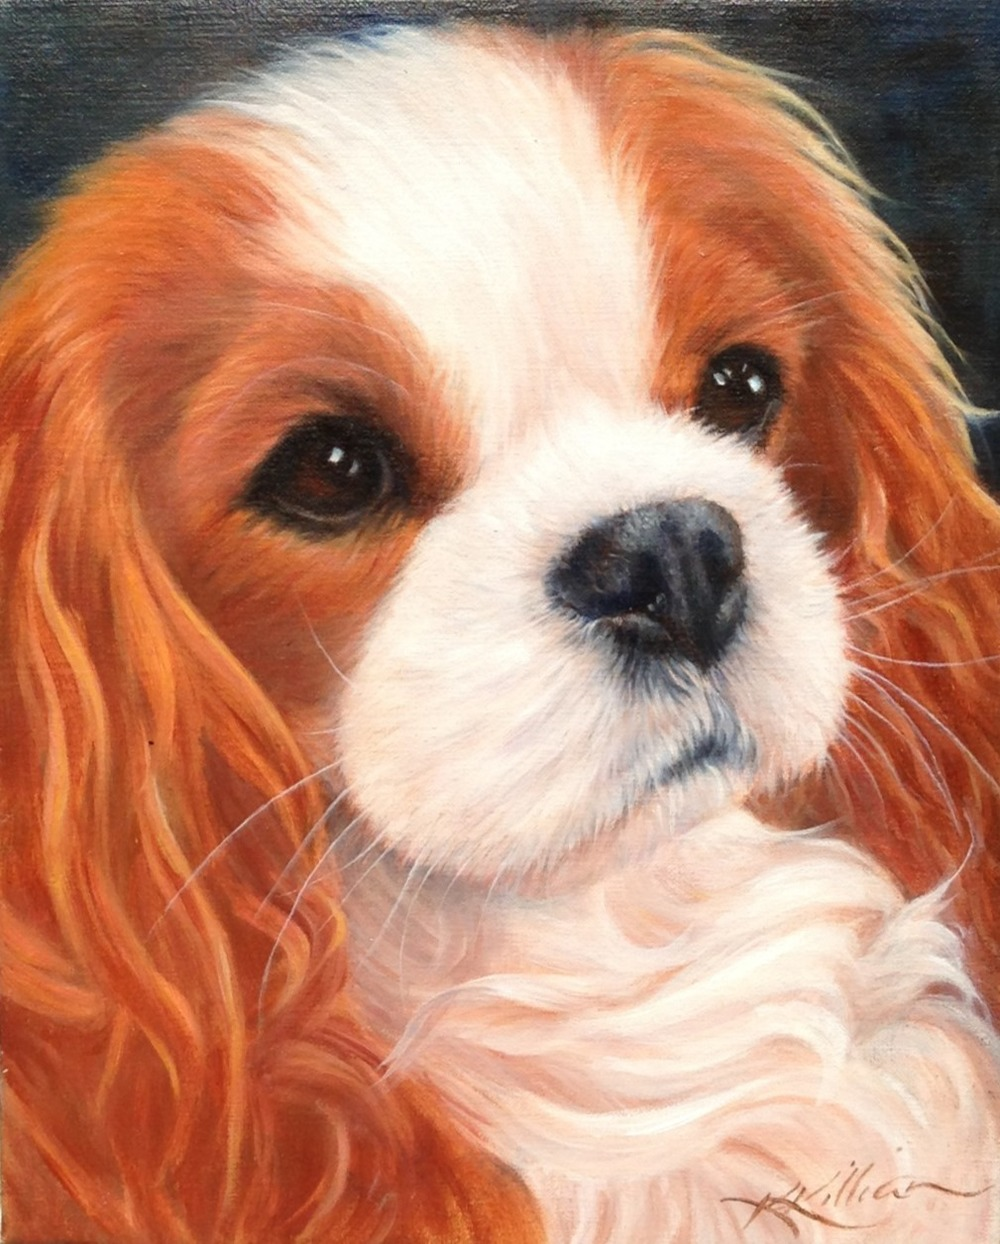 Dog & Horse Fine Art, Karen Killian, Cavalier, Blenheim.JPG